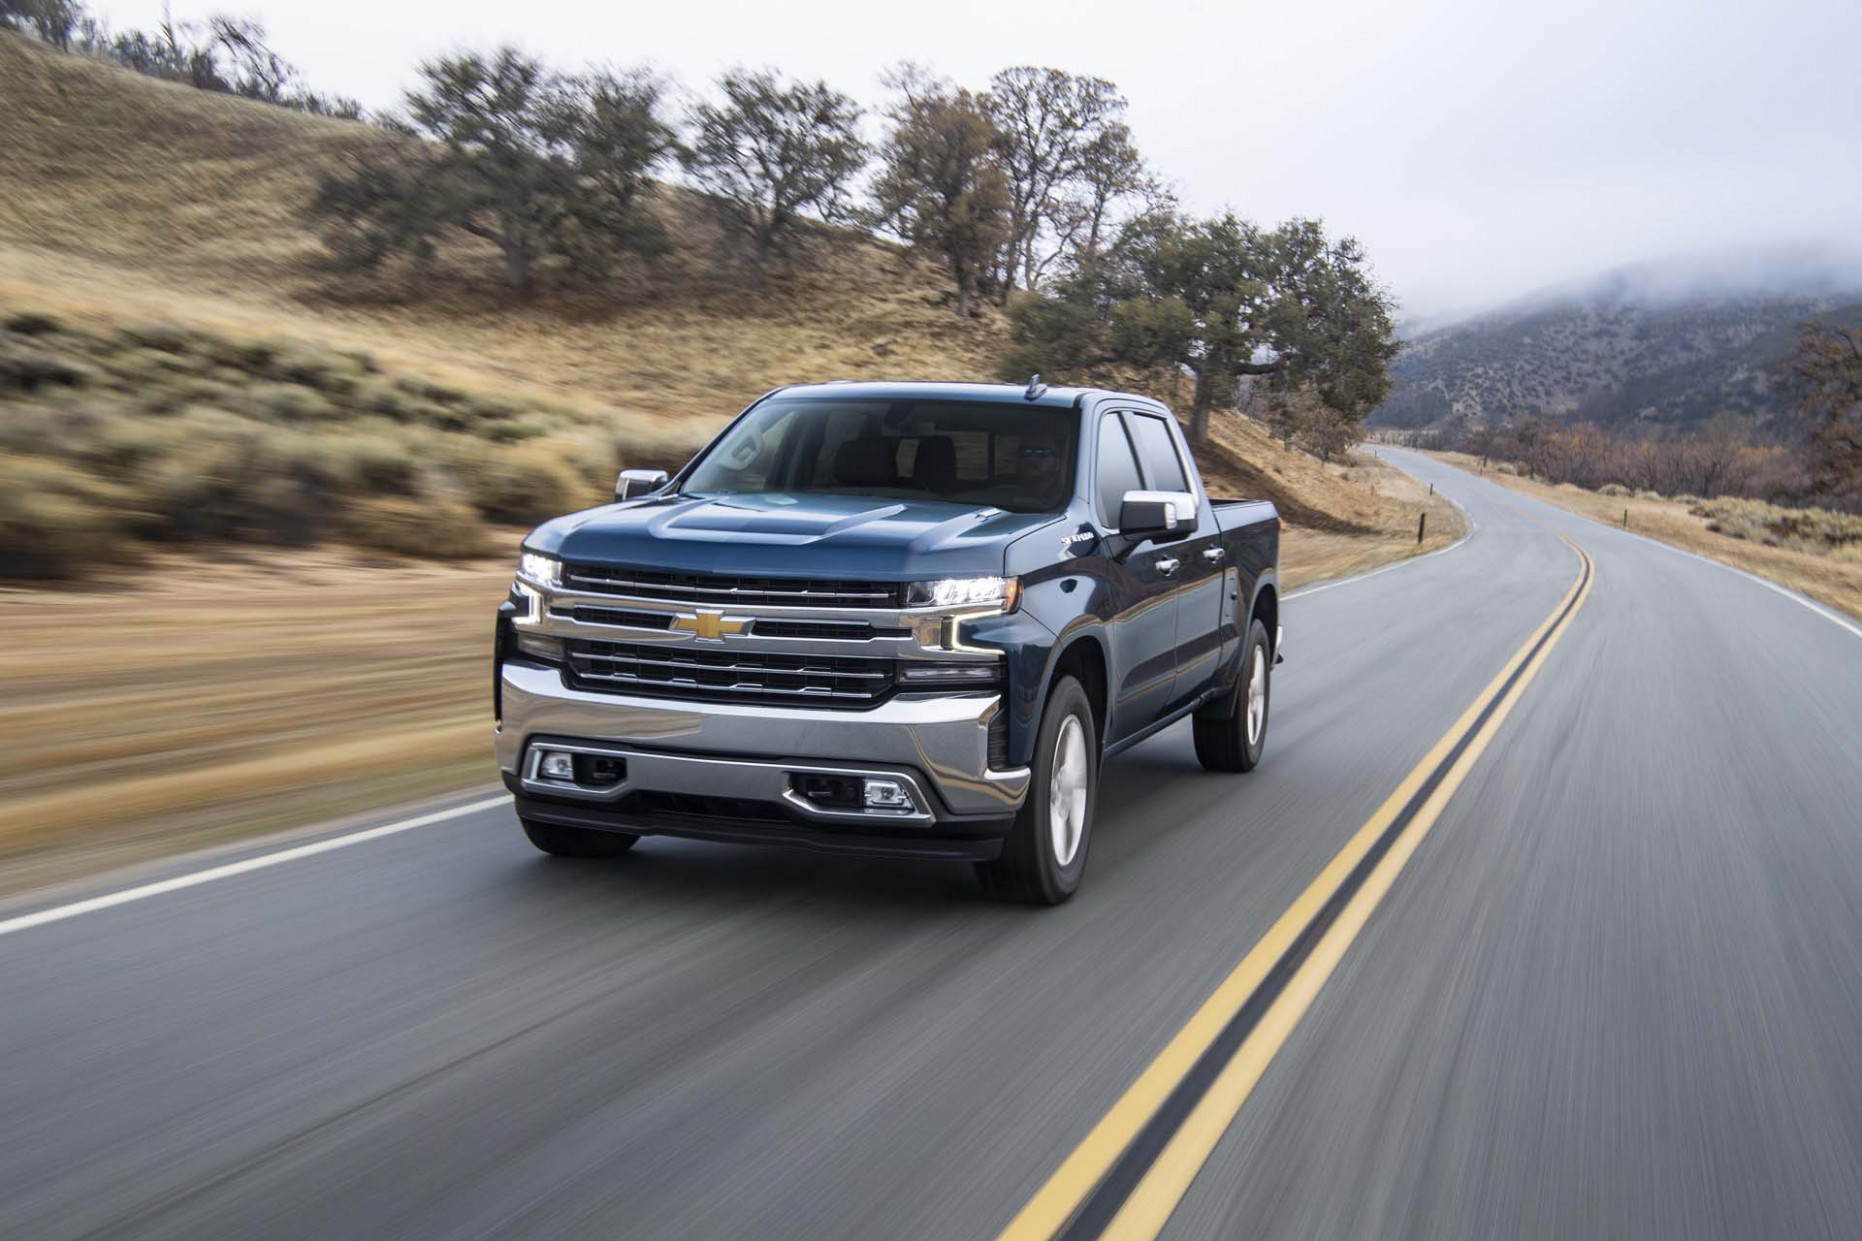 11 Chevrolet Silverado vs. 11 GMC Sierra 11: Compare Trucks